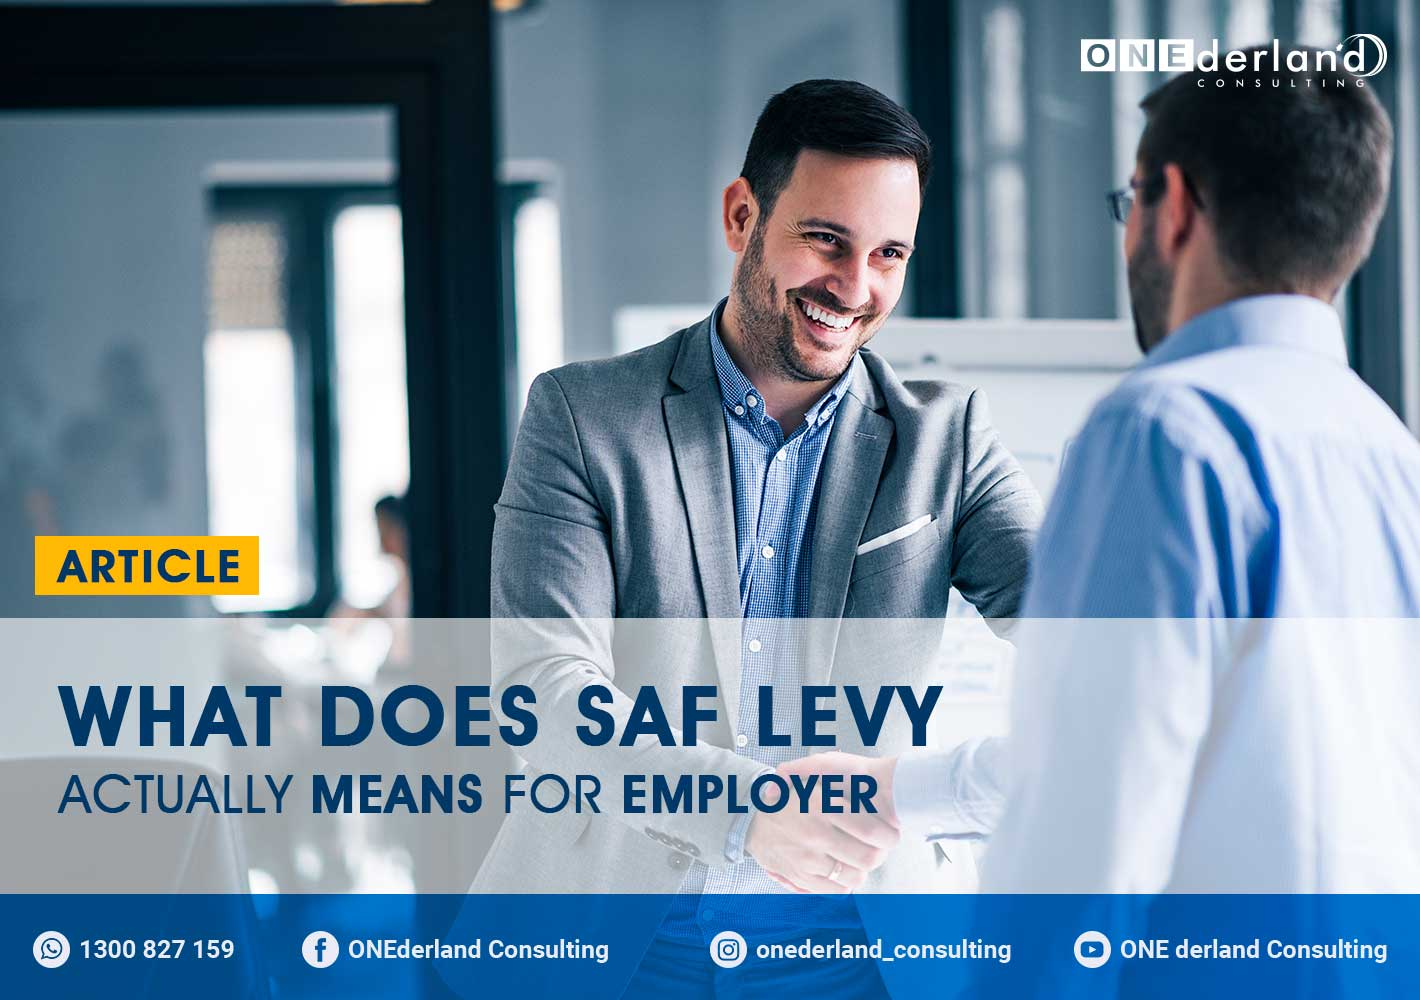 What Does SAF Levy Actually Means For Employer?